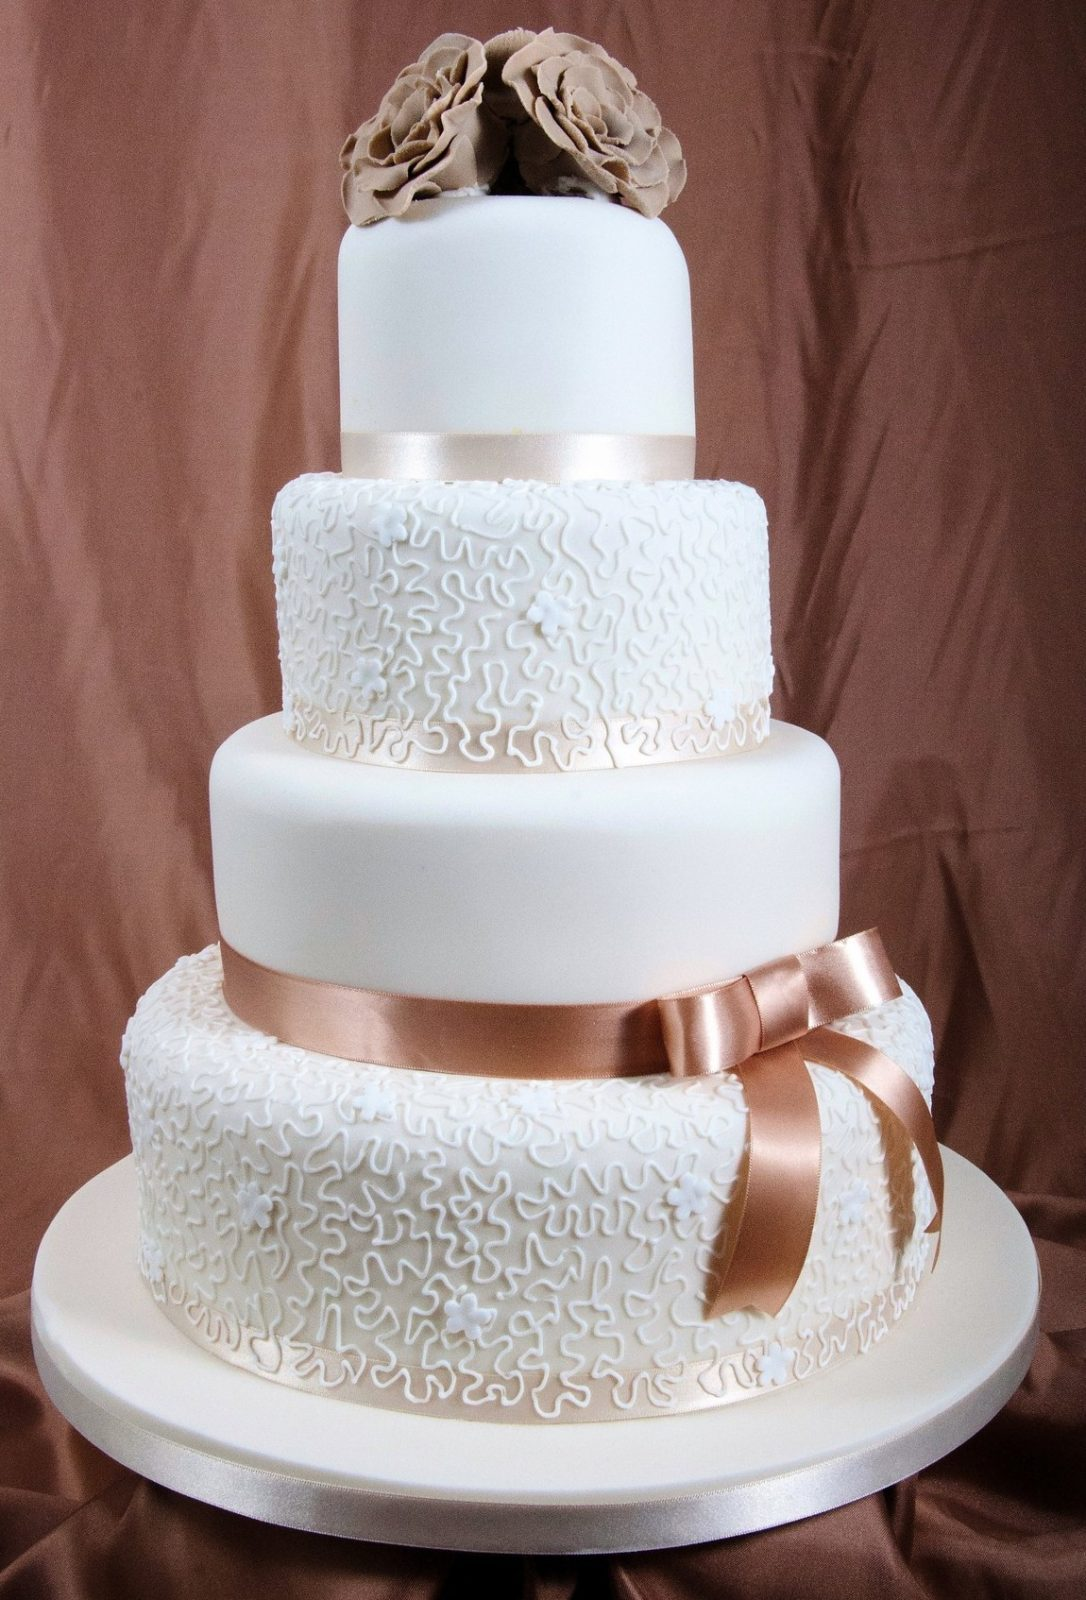 Cake Decorating Ideas For Wedding Simple : Versatile ideas for your Wedding   Socially Fabulous ...